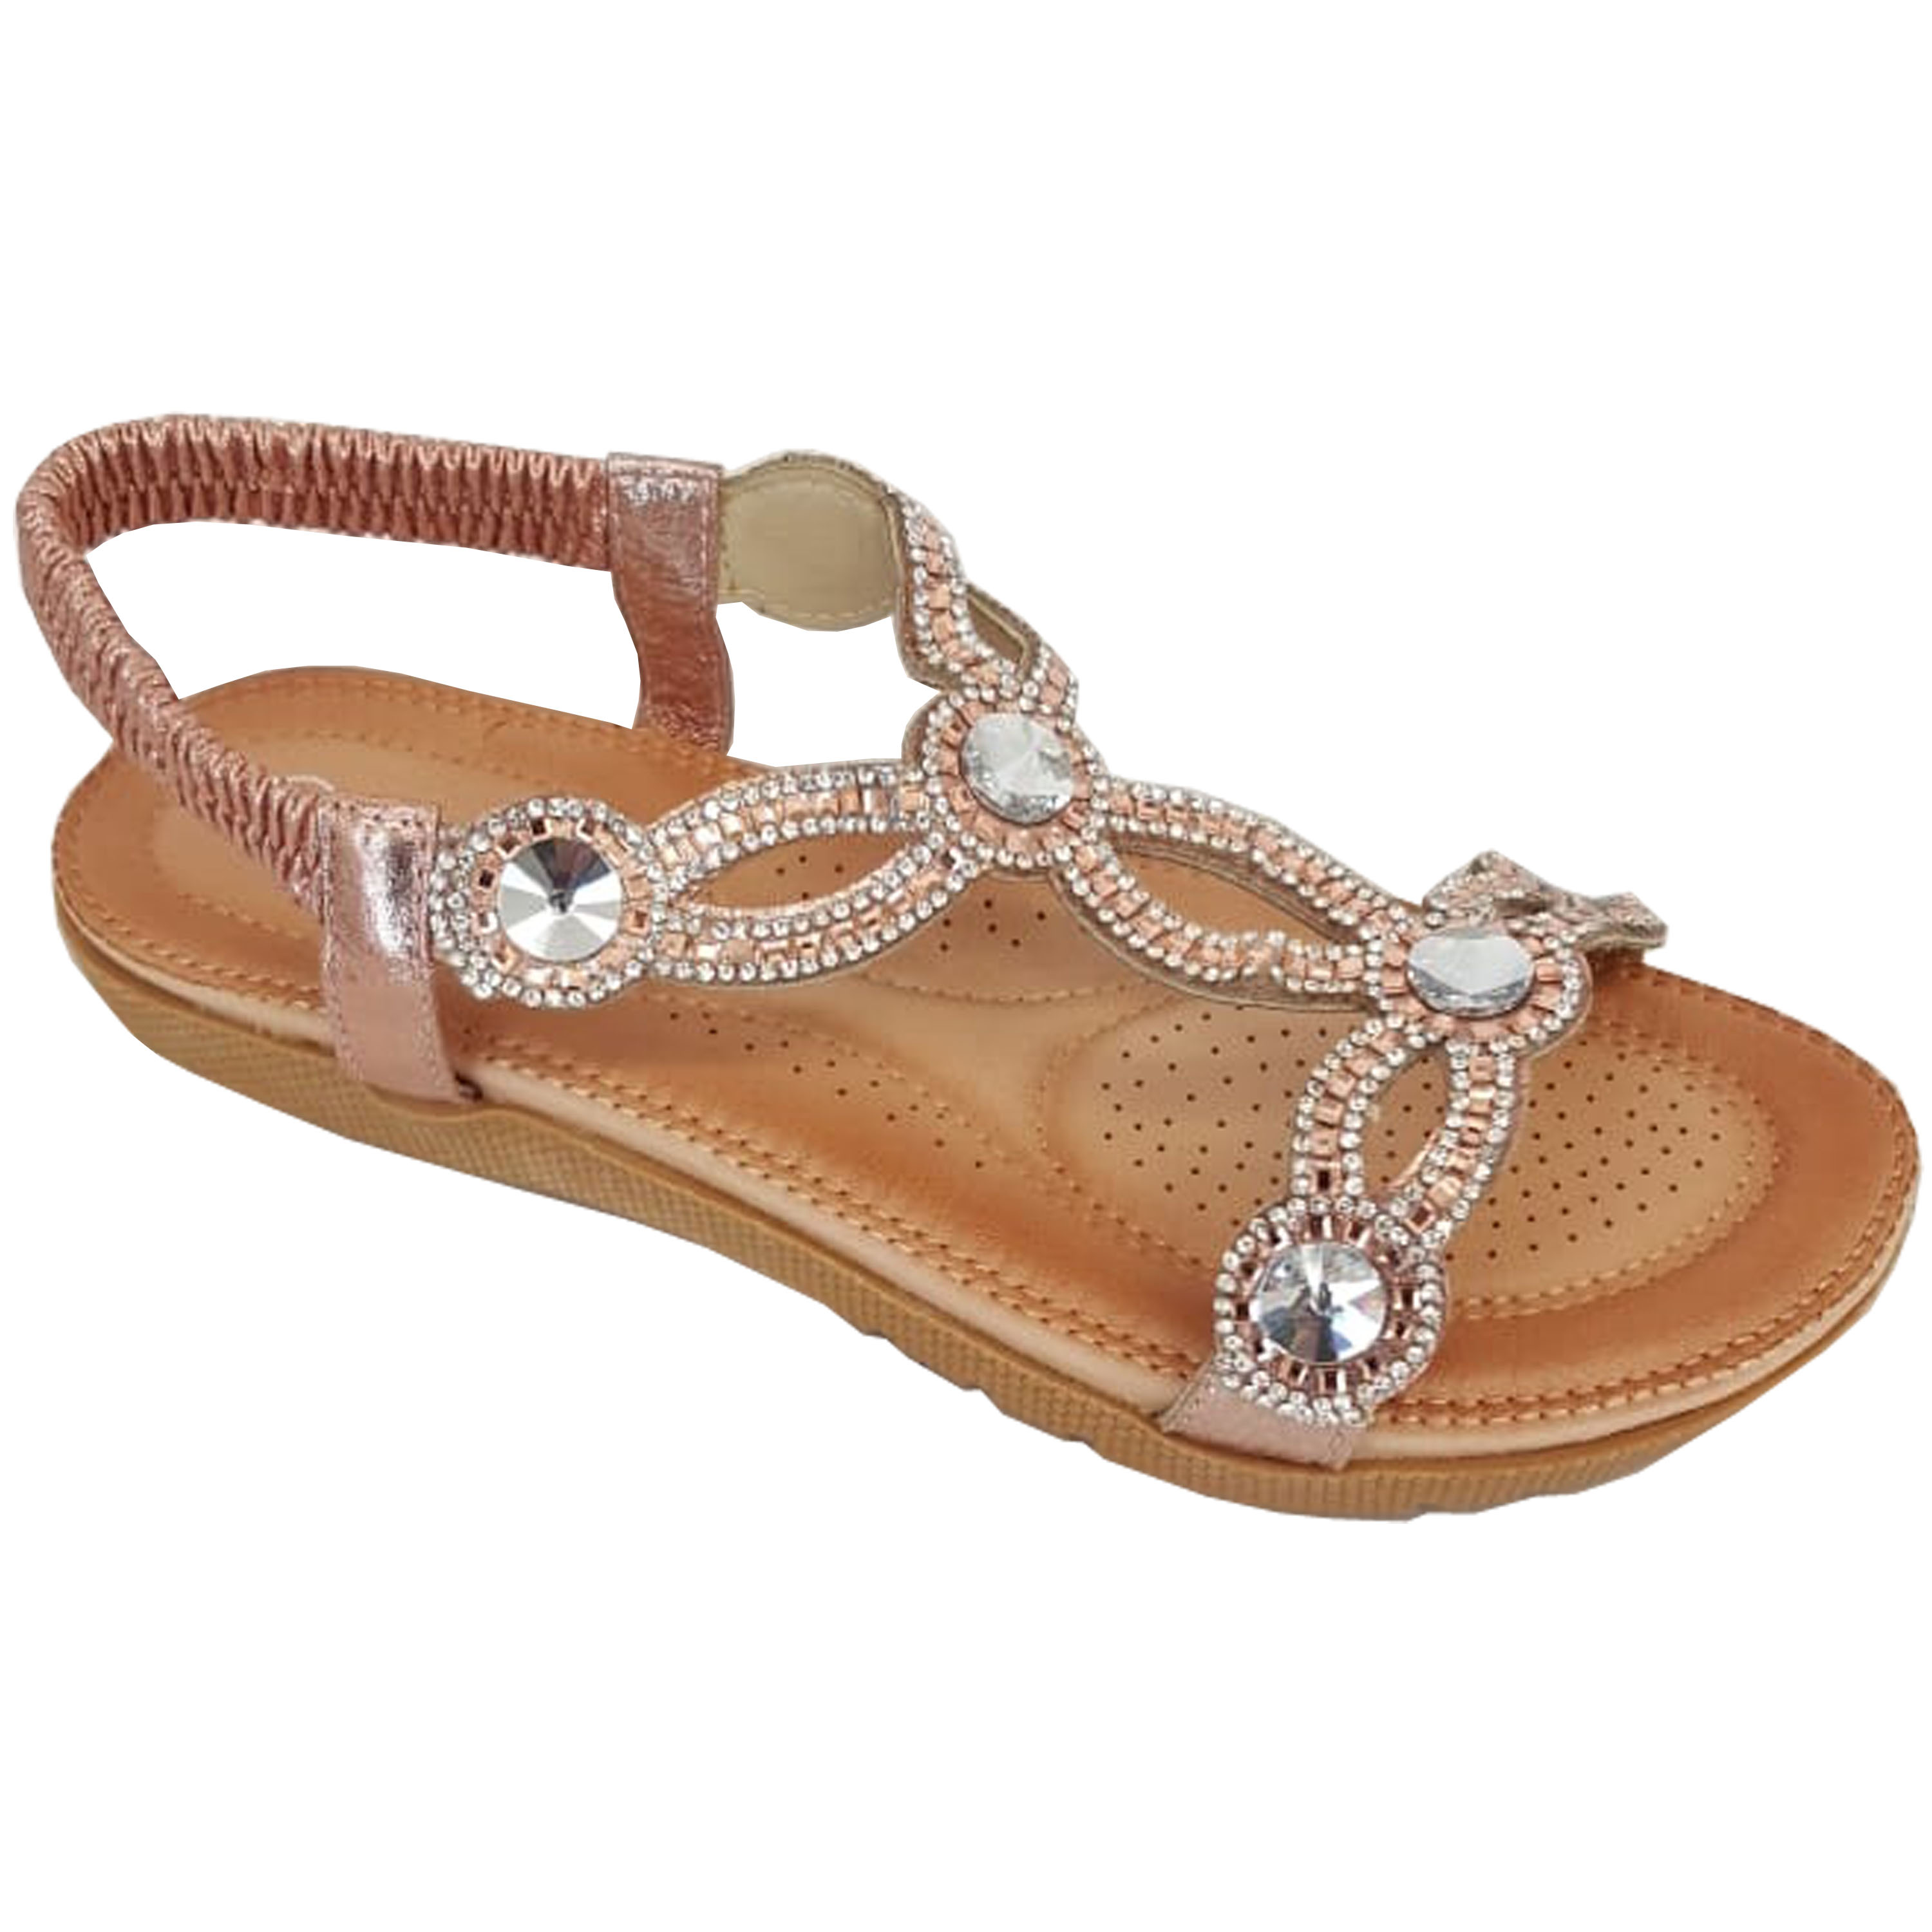 Ladies-Sandals-Womens-Diamante-Sling-Back-Open-Toe-Post-Shoes-Fashion-Summer-New thumbnail 9